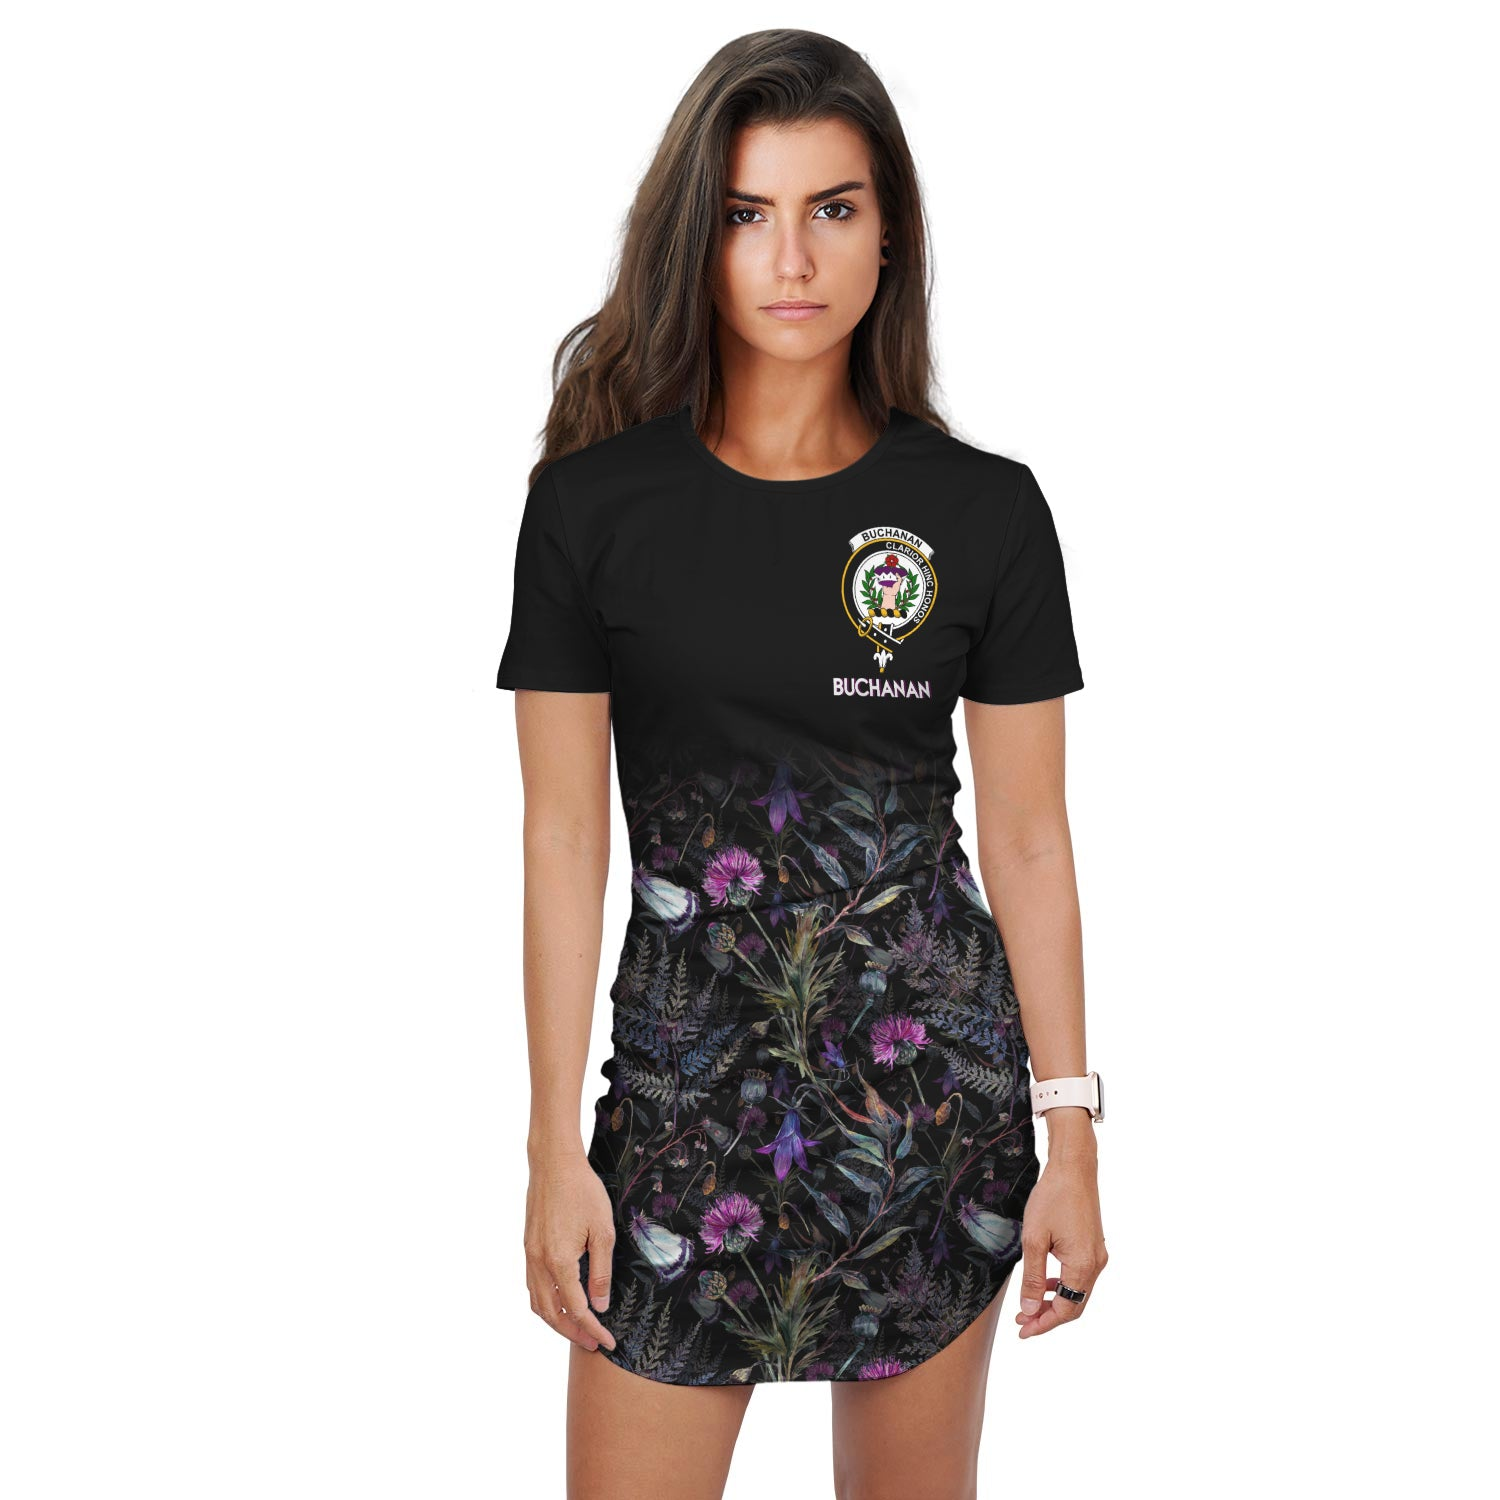 Buchanan Crest T-Shirt Dress Scottish Thistle | Over 300 Clans | Scotland